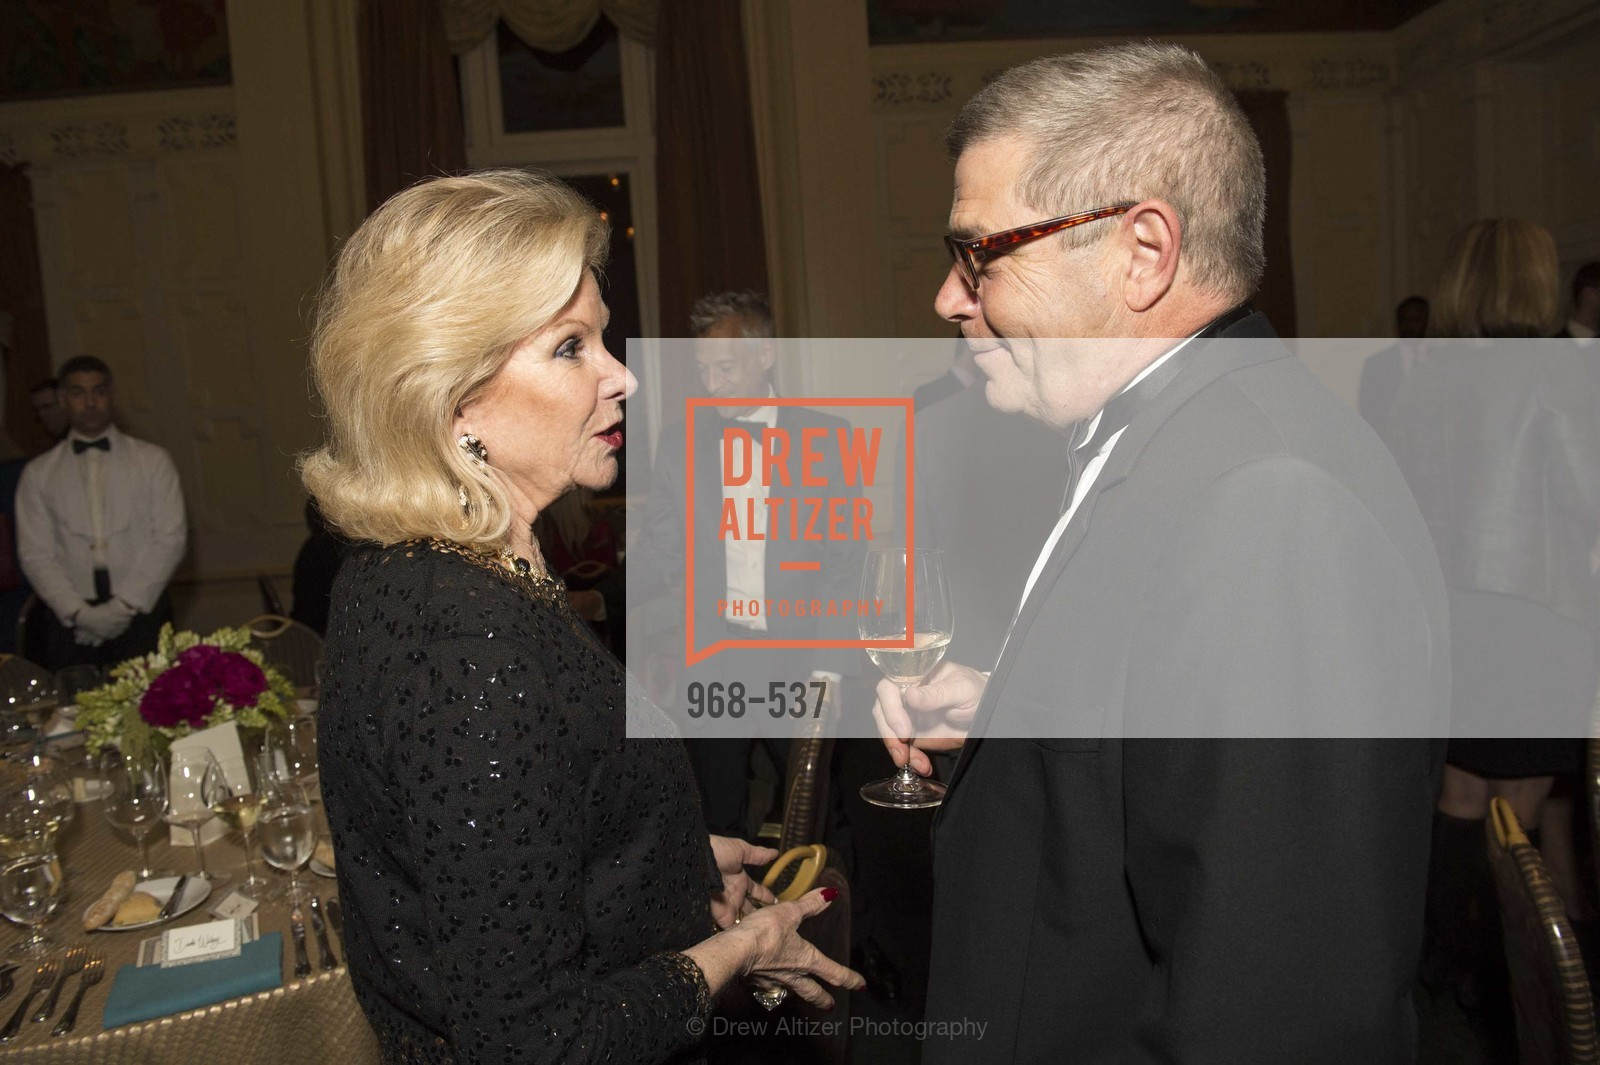 Dede Wilsey, TOP OF THE MARK'S 75TH Anniversary Party, US, November 7th, 2014,Drew Altizer, Drew Altizer Photography, full-service agency, private events, San Francisco photographer, photographer california